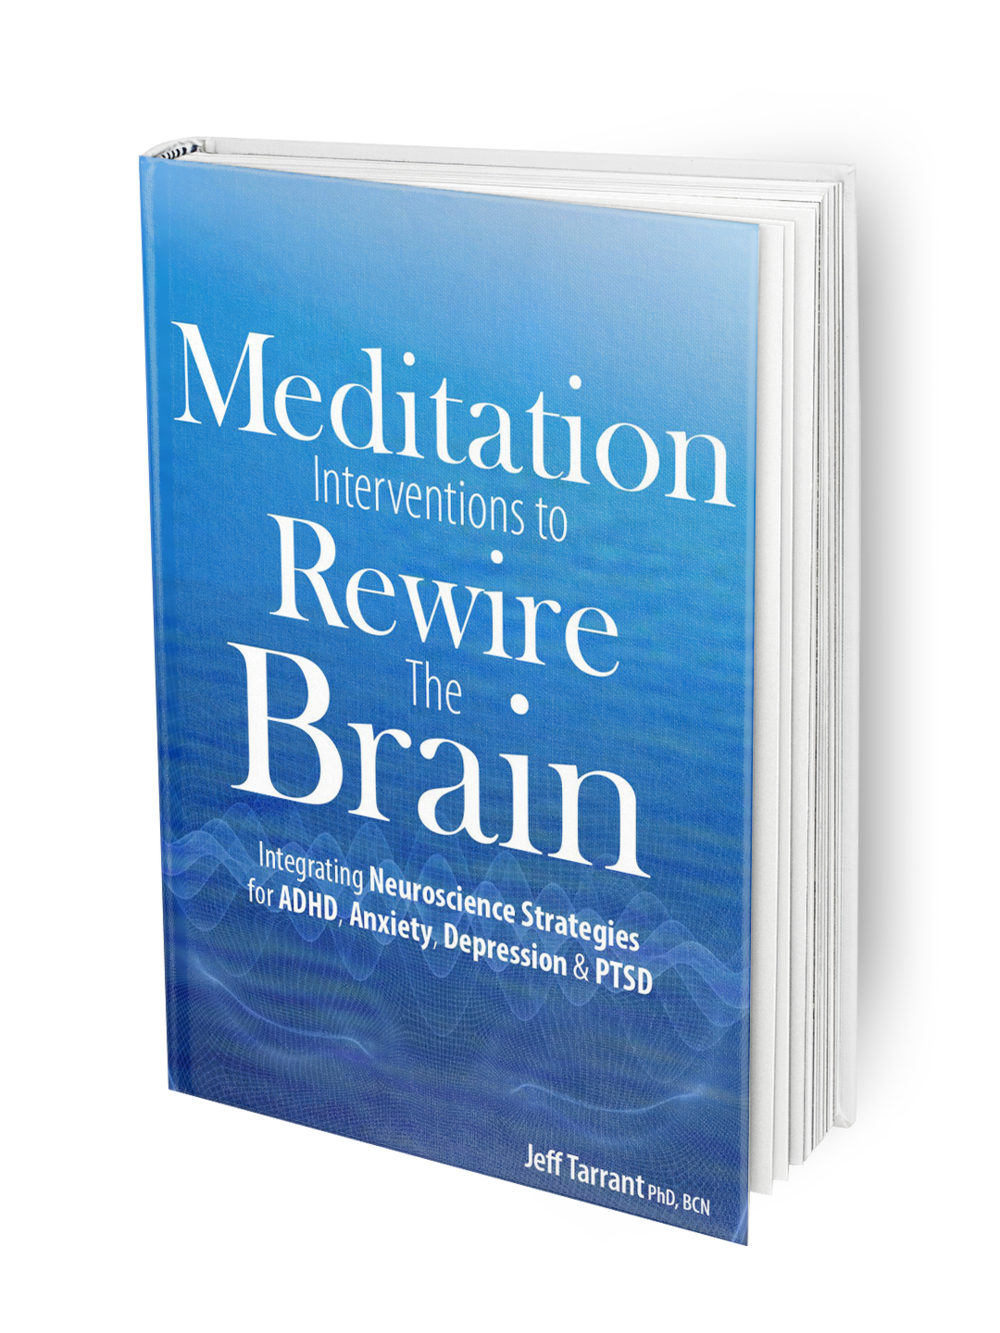 Meditation Interventions to Rewire The Brain is a book written by Jeff Tarrant PhD.